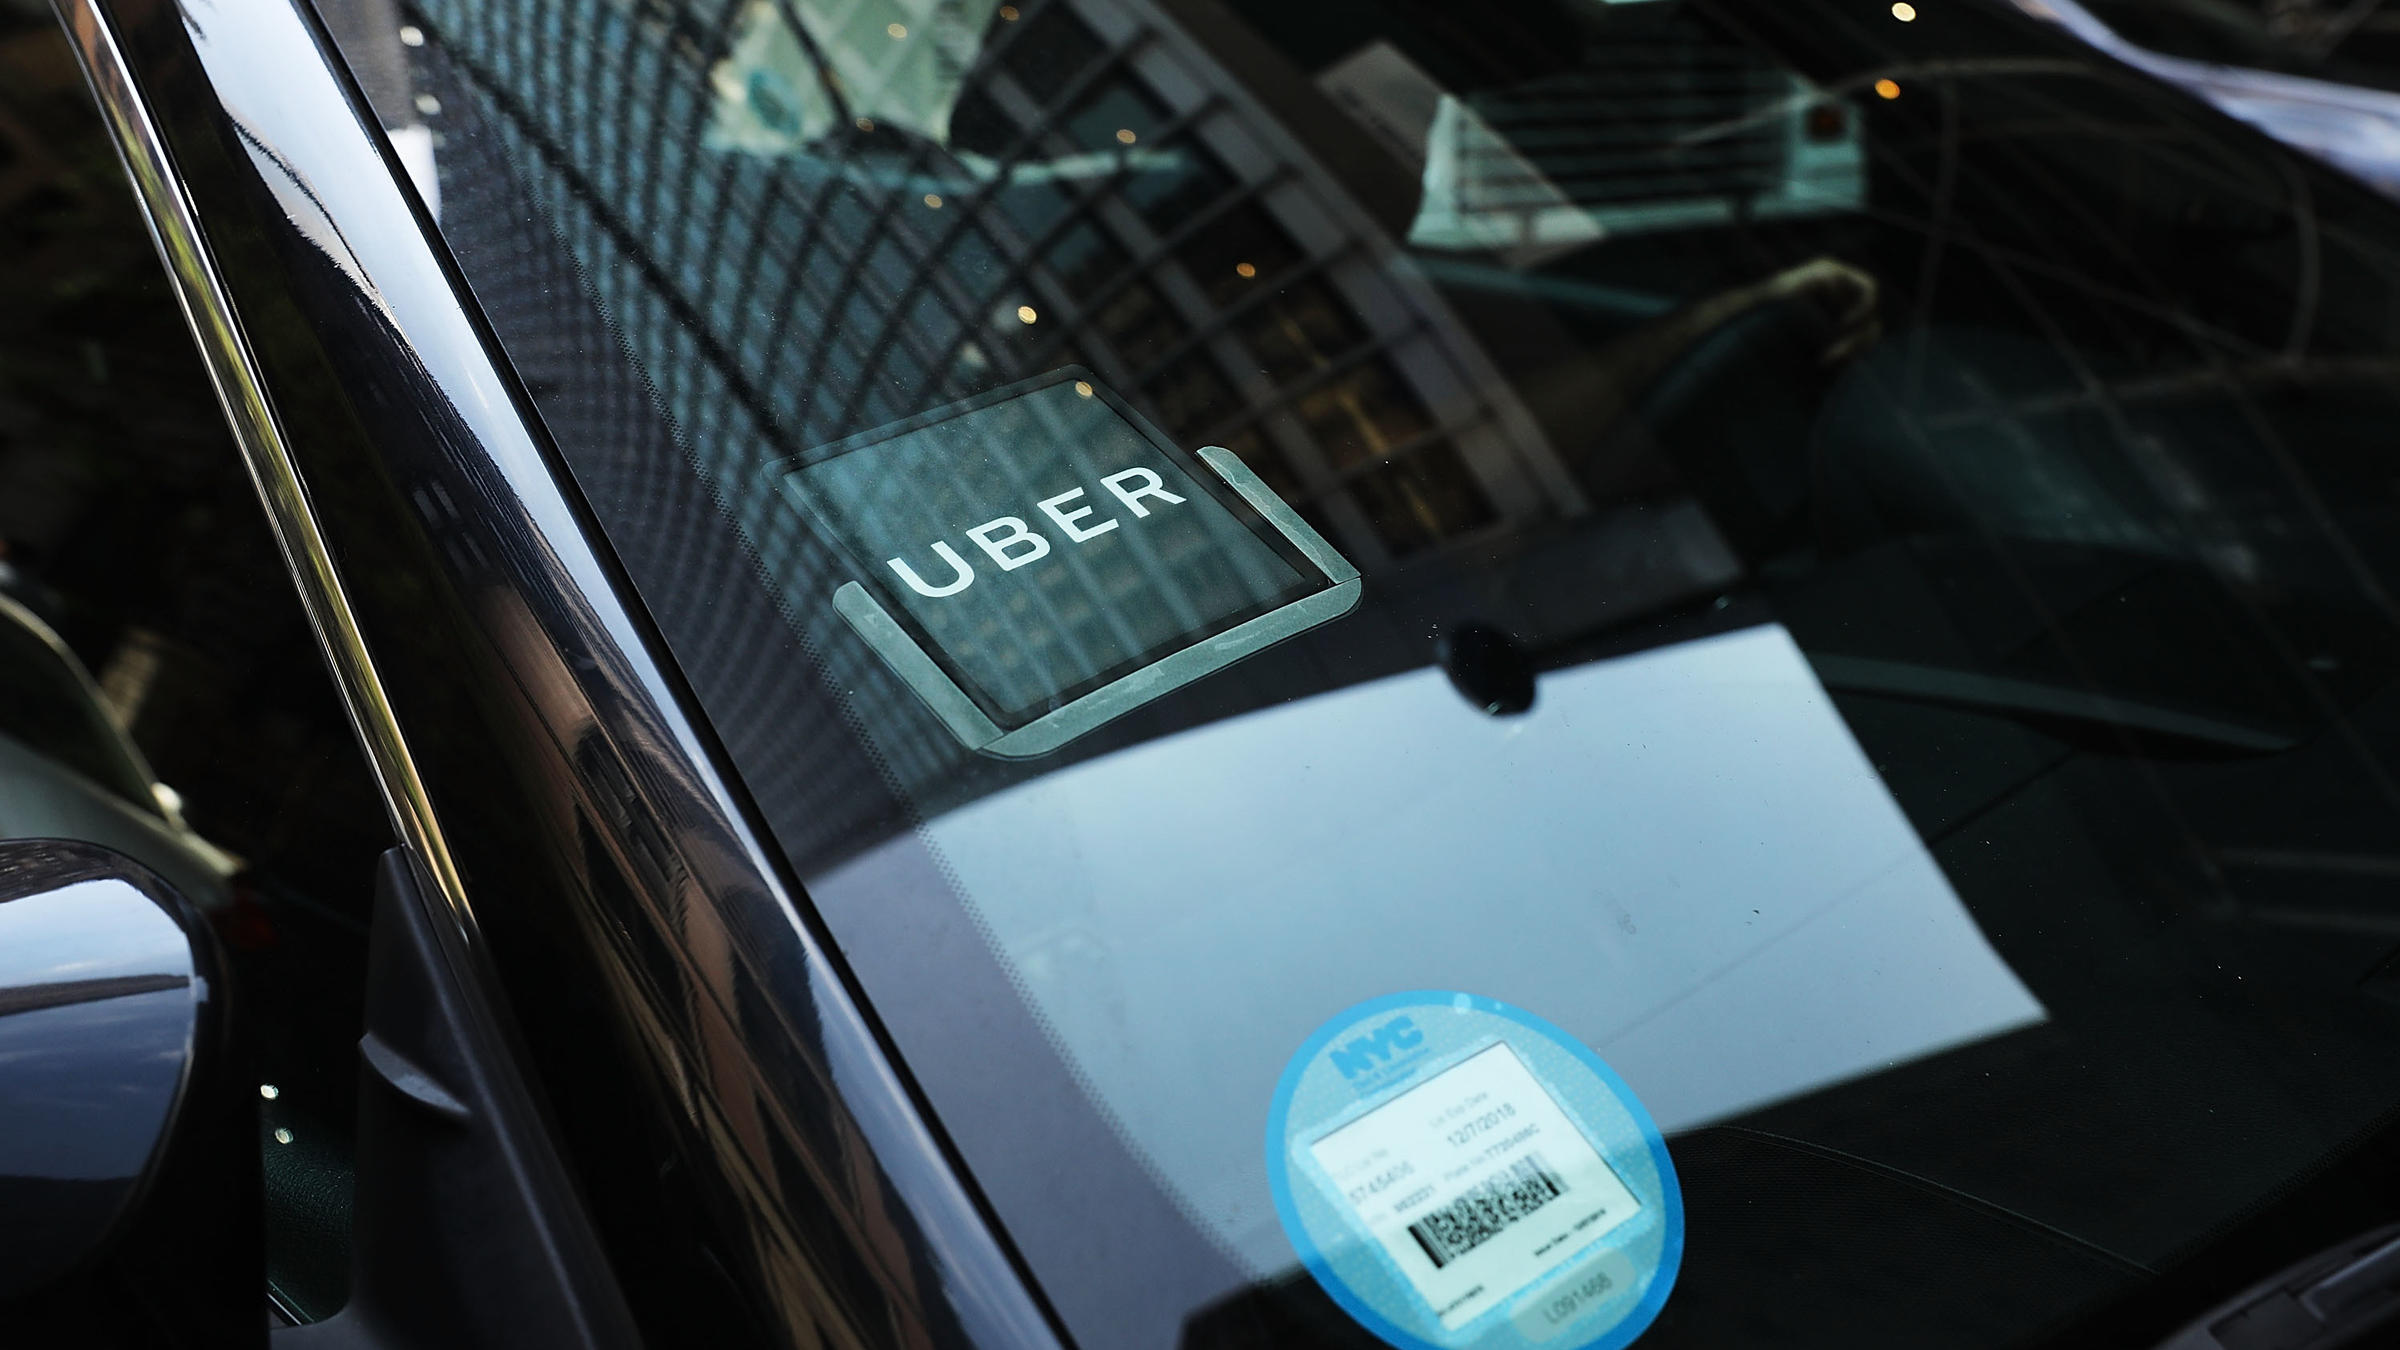 Average hourly wage for Uber, Lyft drivers -- $3.37